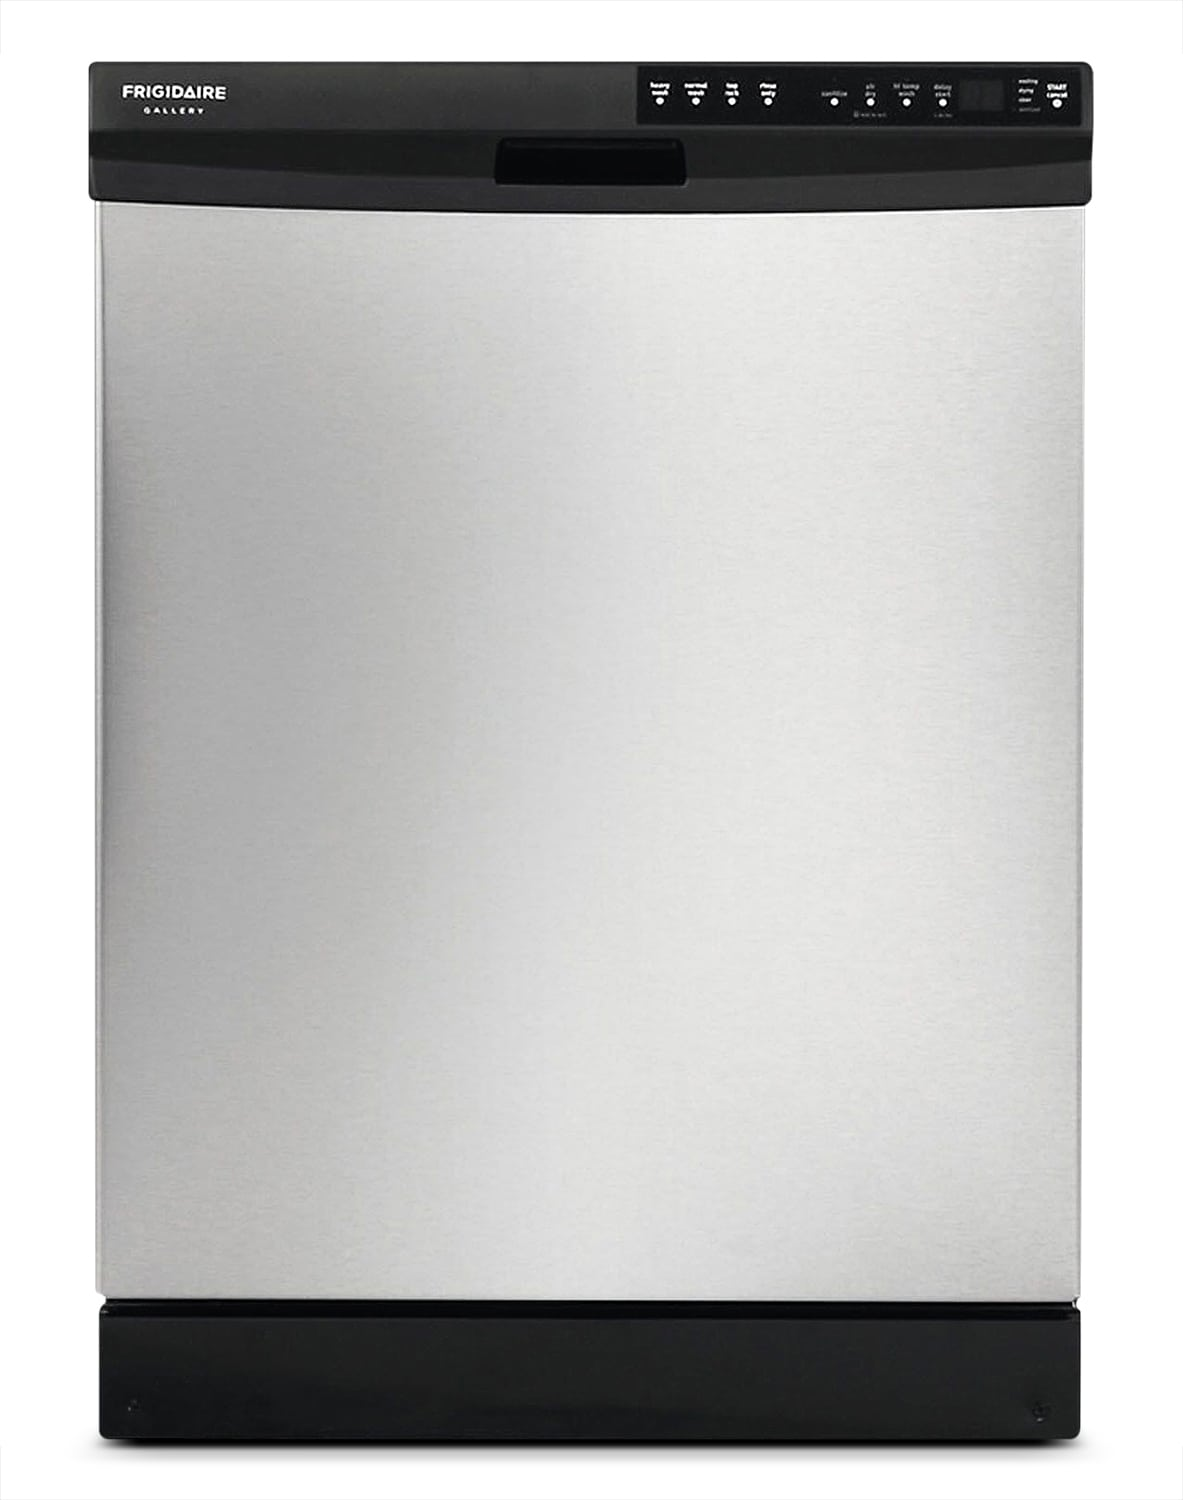 "Frigidaire Gallery Stainless Steel 24"" Dishwasher - FGBD2445NF"